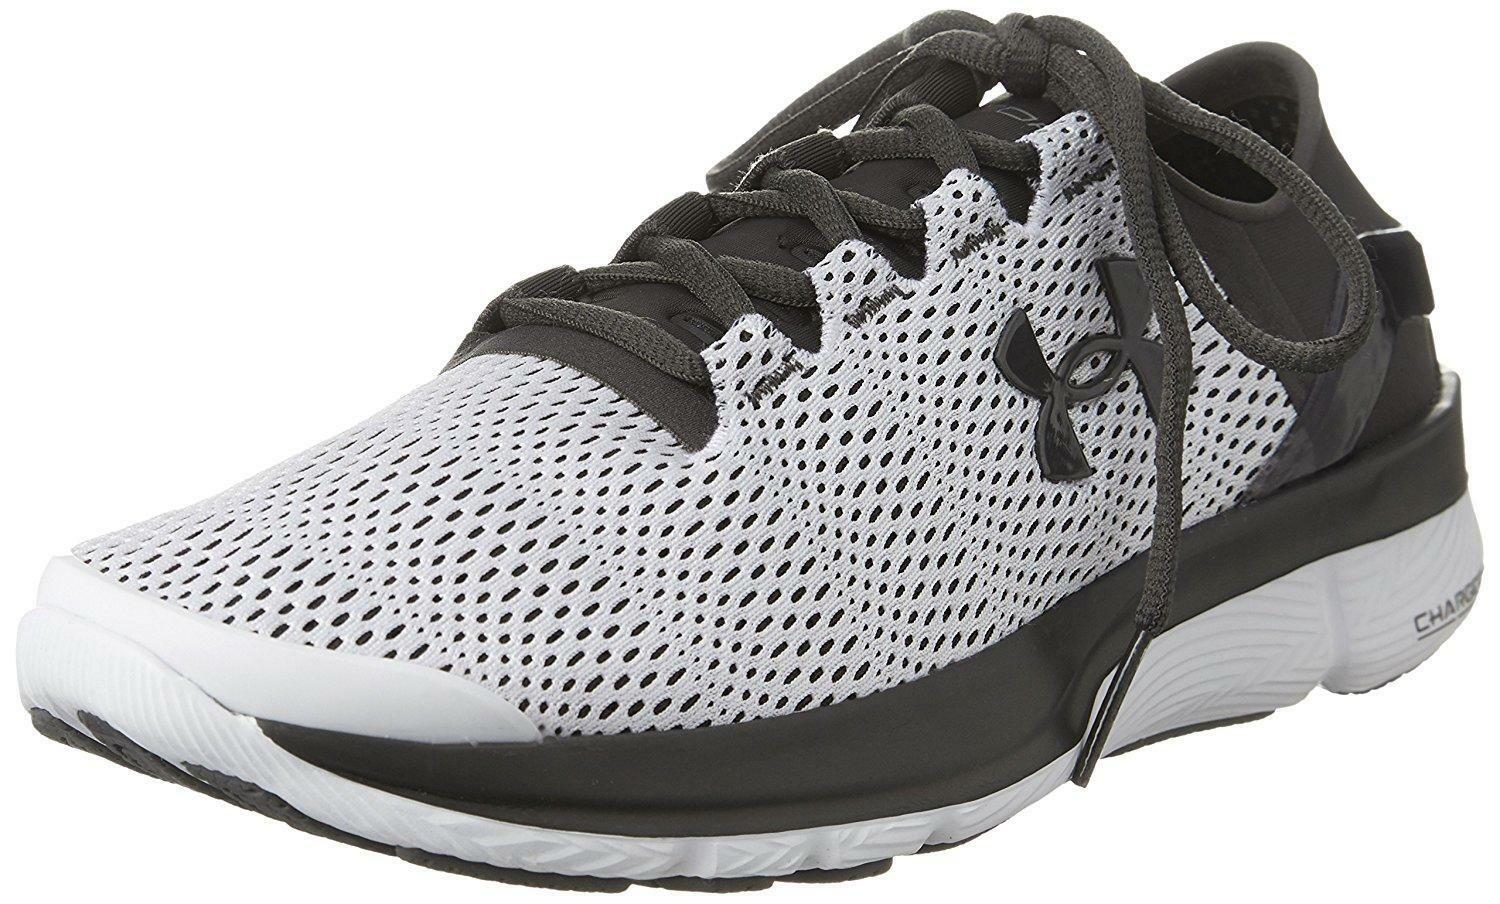 Under Armour Mens UA SpeedForm Apollo 2 Running schuhe